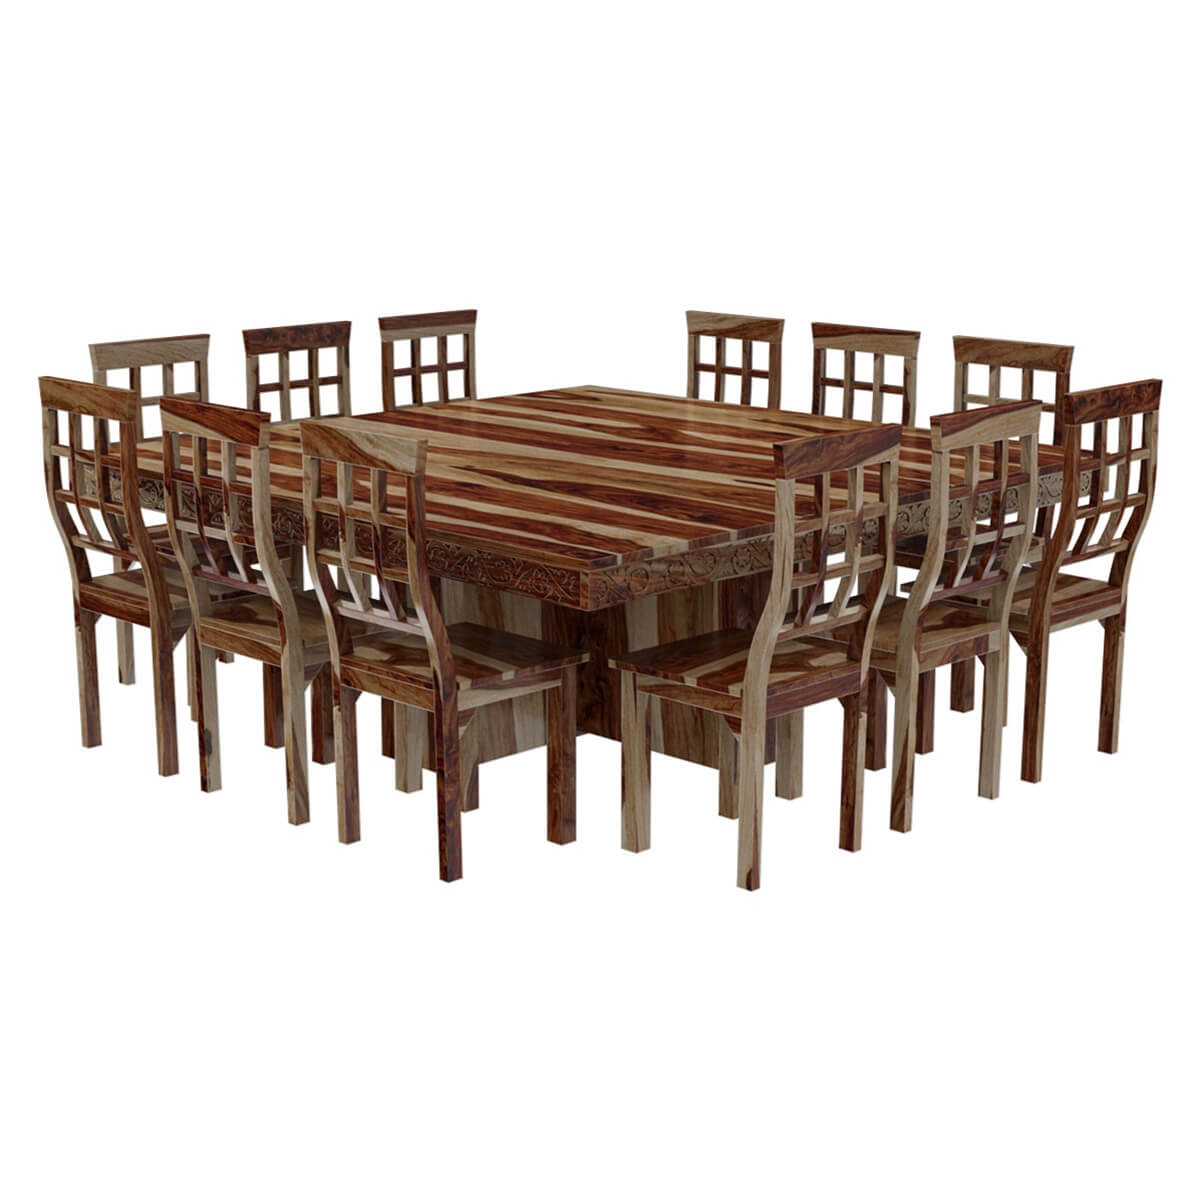 Dallas ranch large square dining room table and chair set for Esstisch 12 personen